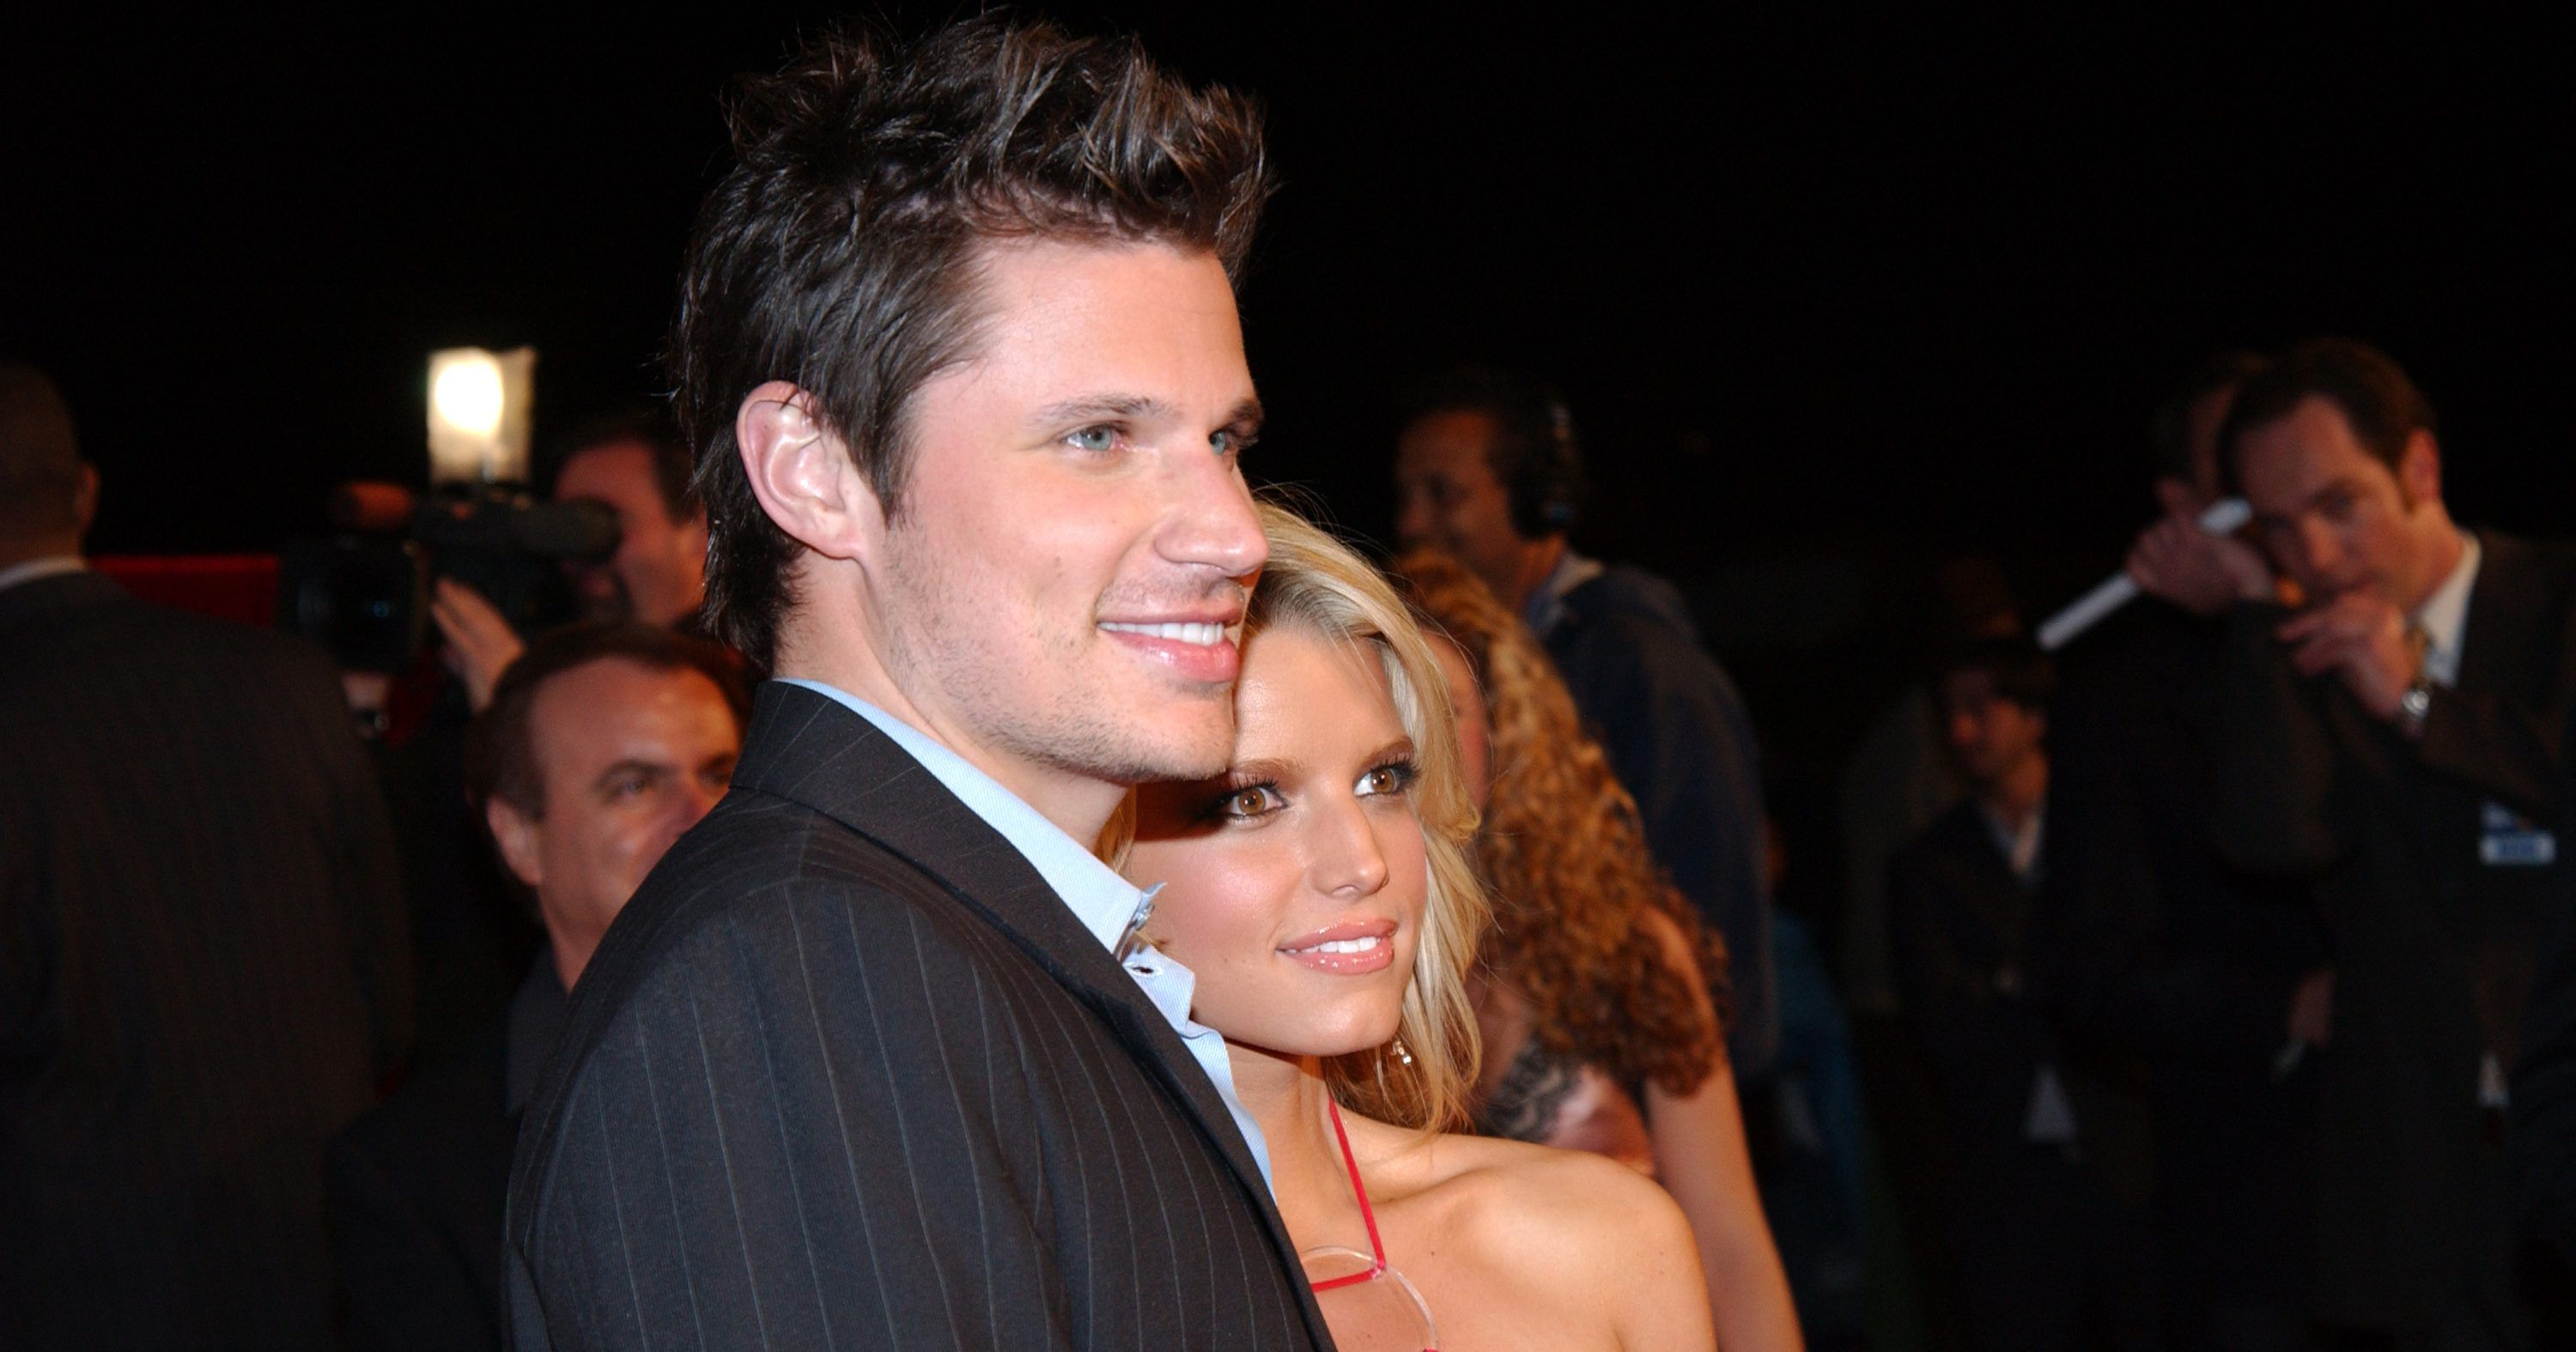 10 Reality Stars Who Got Married On Their Shows (But Are No Longer Together)